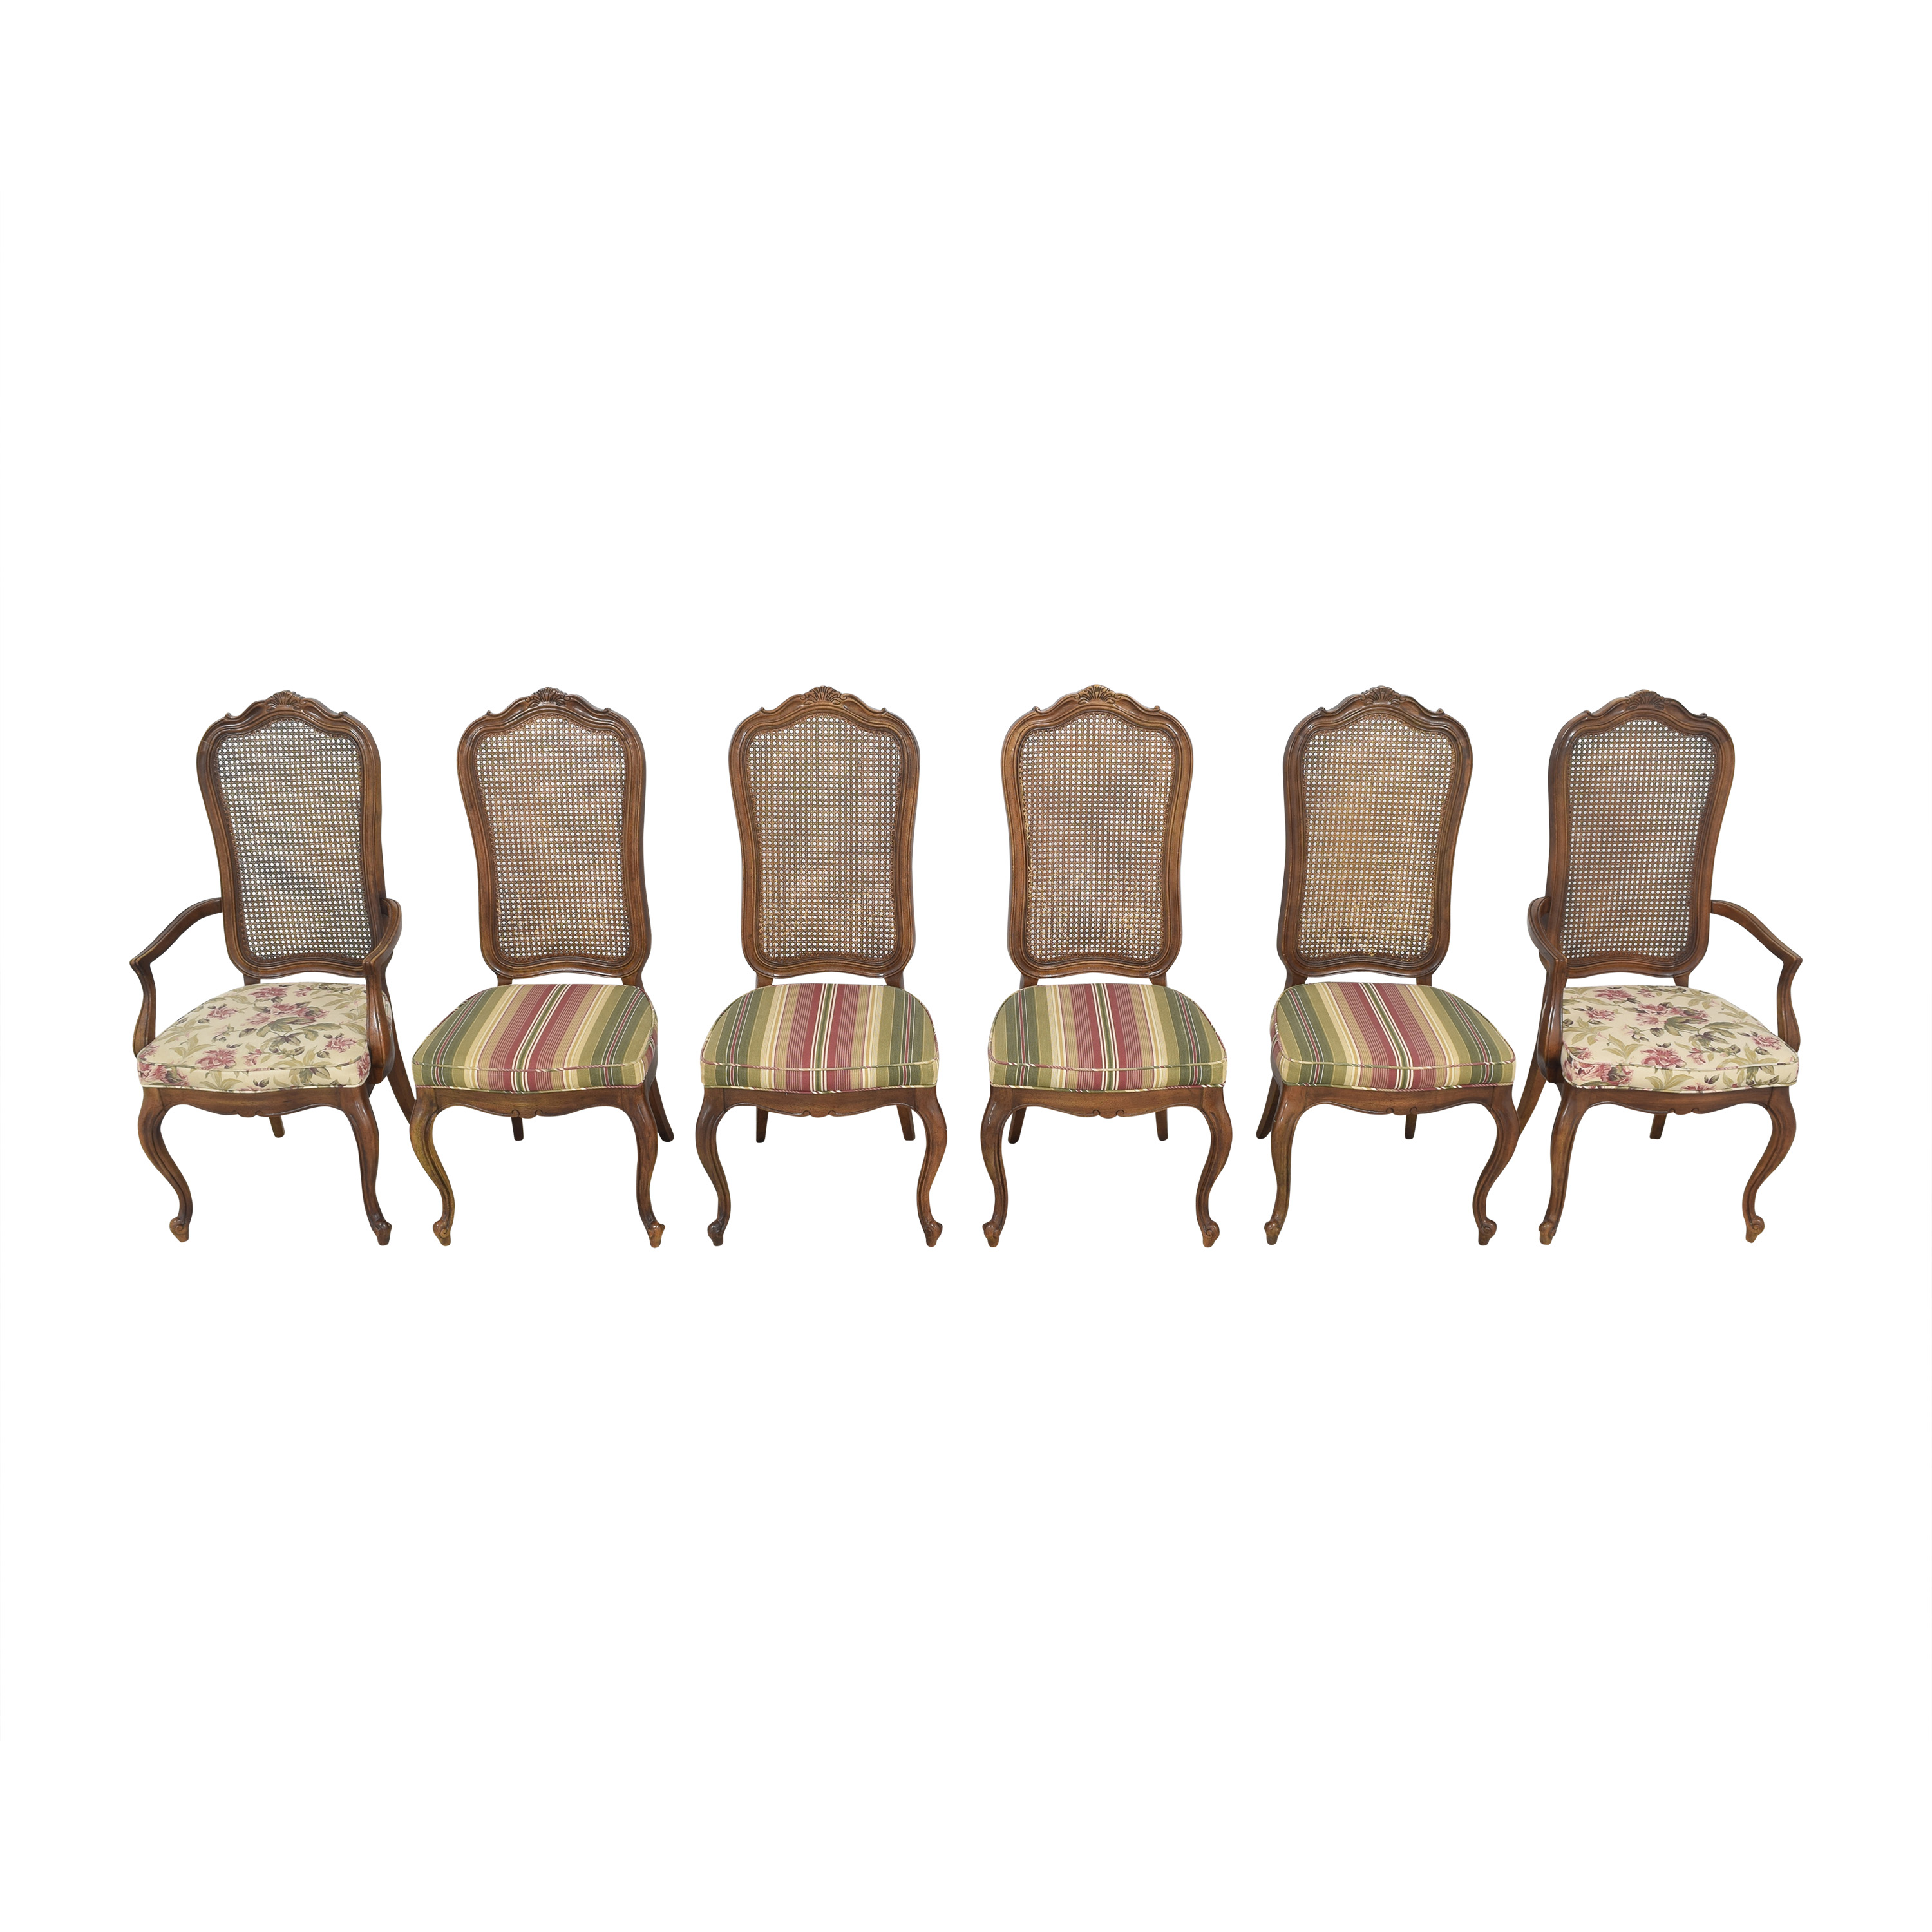 Thomasville Thomasville Cane Back Dining Chairs coupon